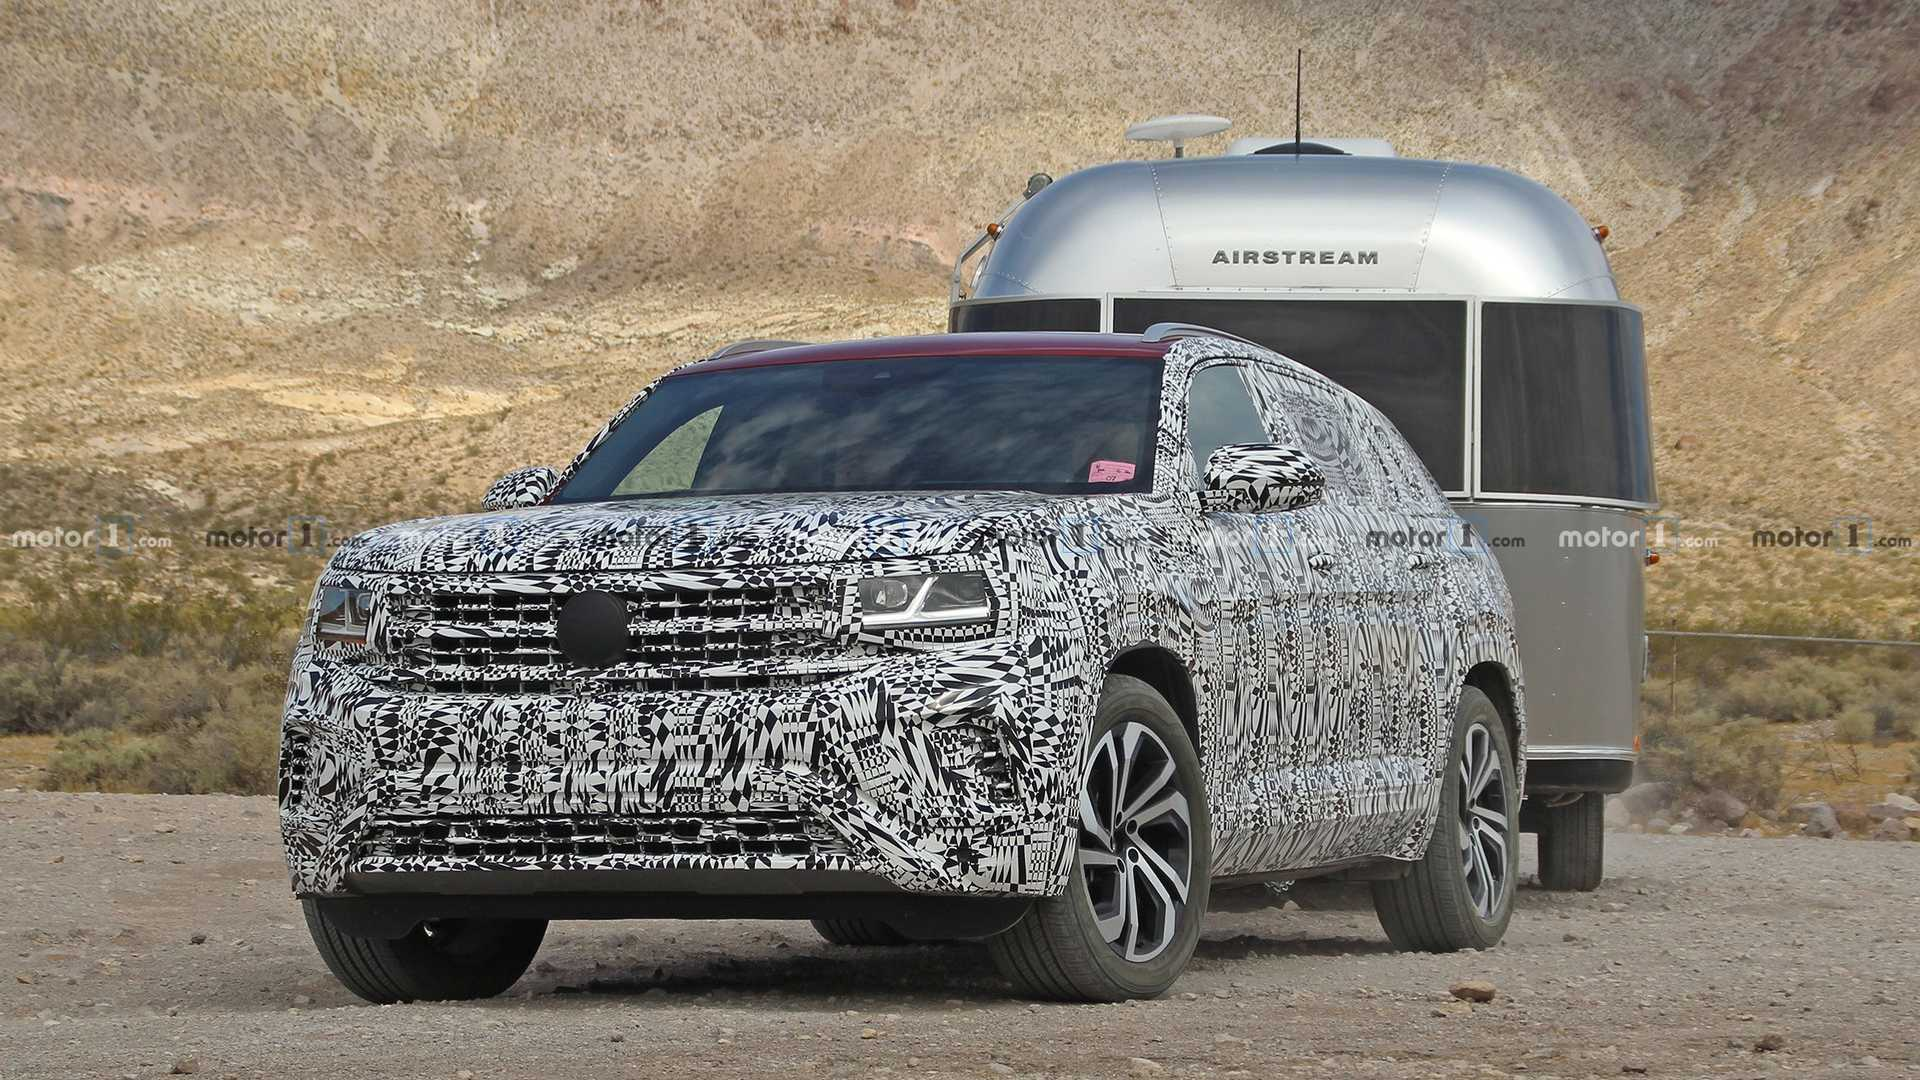 2020 Vw Atlas Cross Sport Spied Inside Looking Quite Familiar